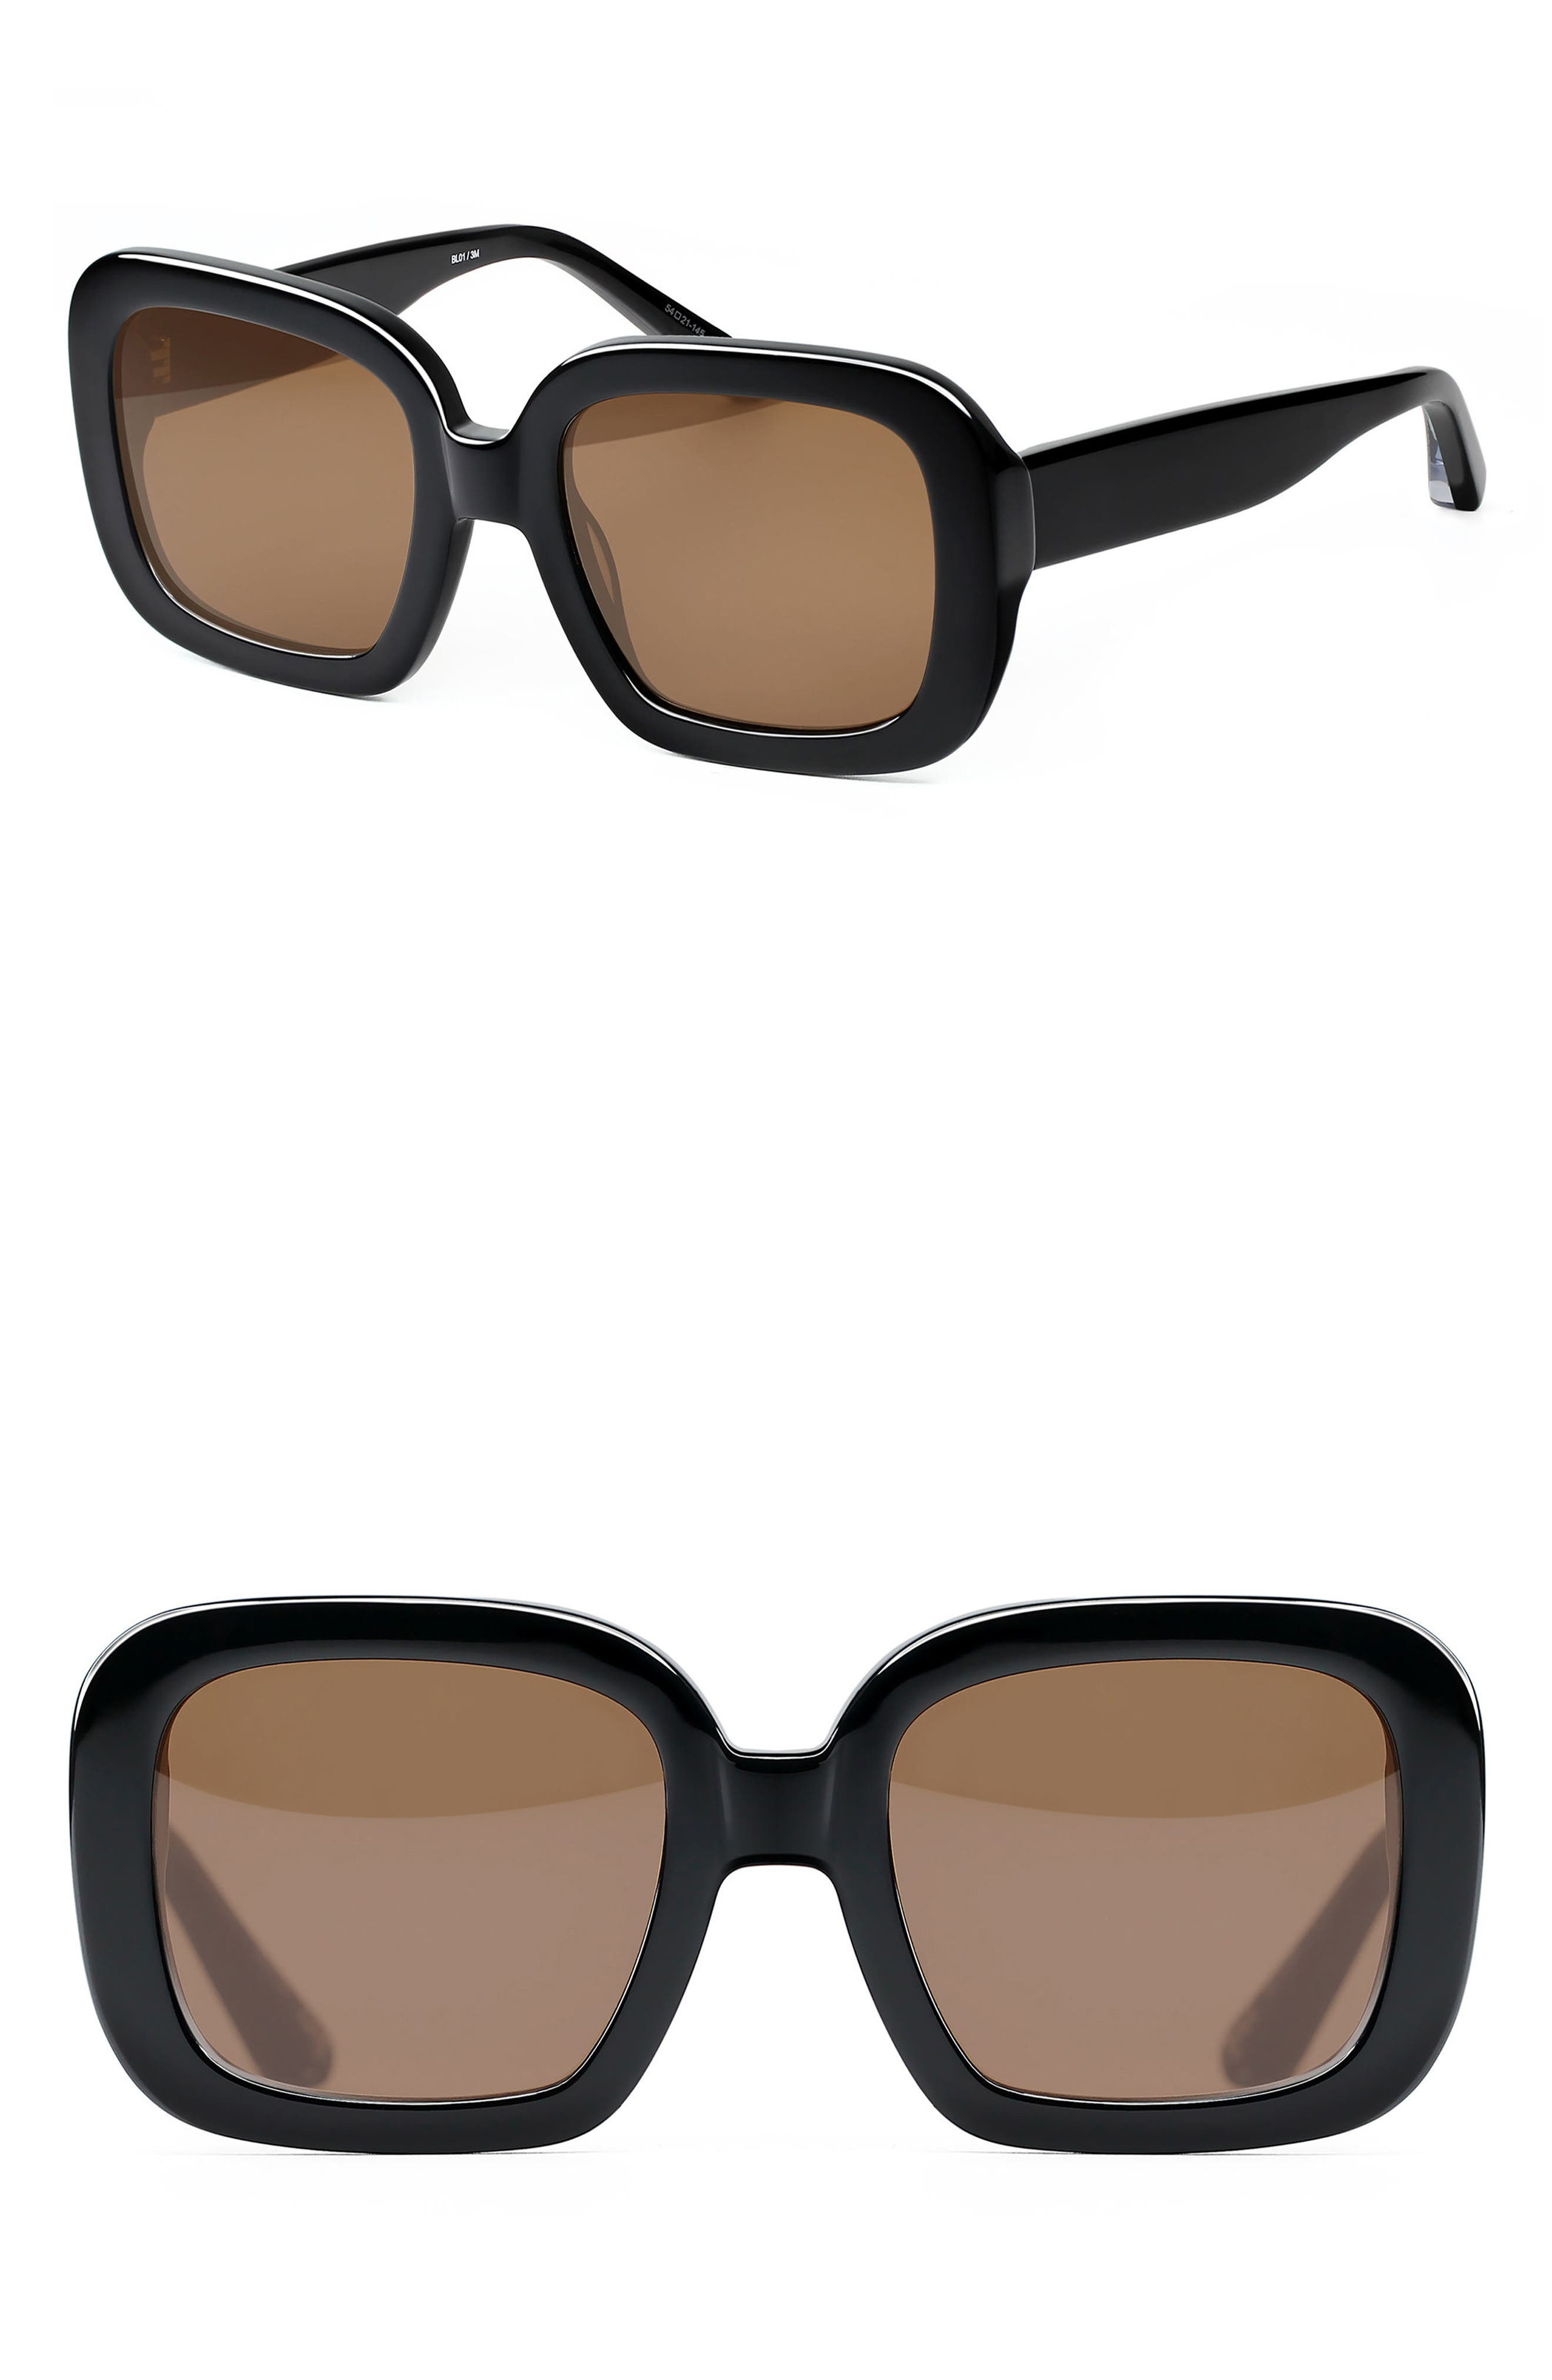 Haley 54mm Square Sunglasses,                             Main thumbnail 1, color,                             001